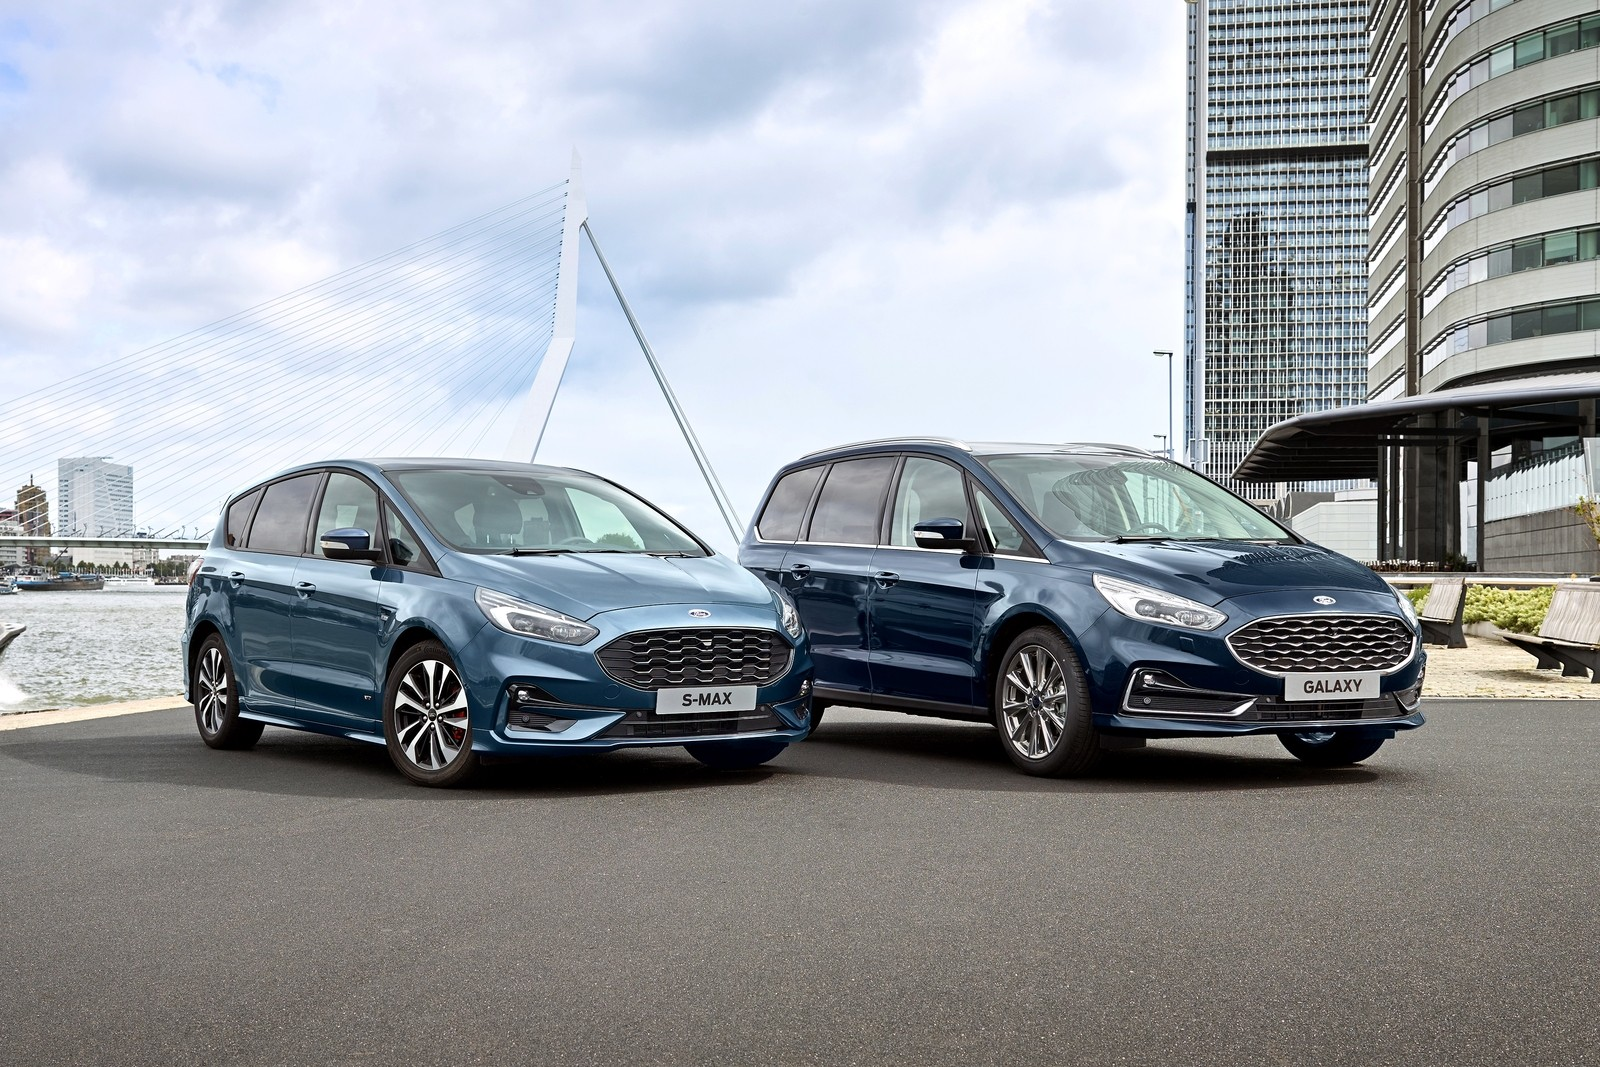 In accordance with the plans Ford announced last year, the Galaxy and S-Max MPVs will leave the European markets by 2022. Before that, though, both will briefly become available in PHEV form.